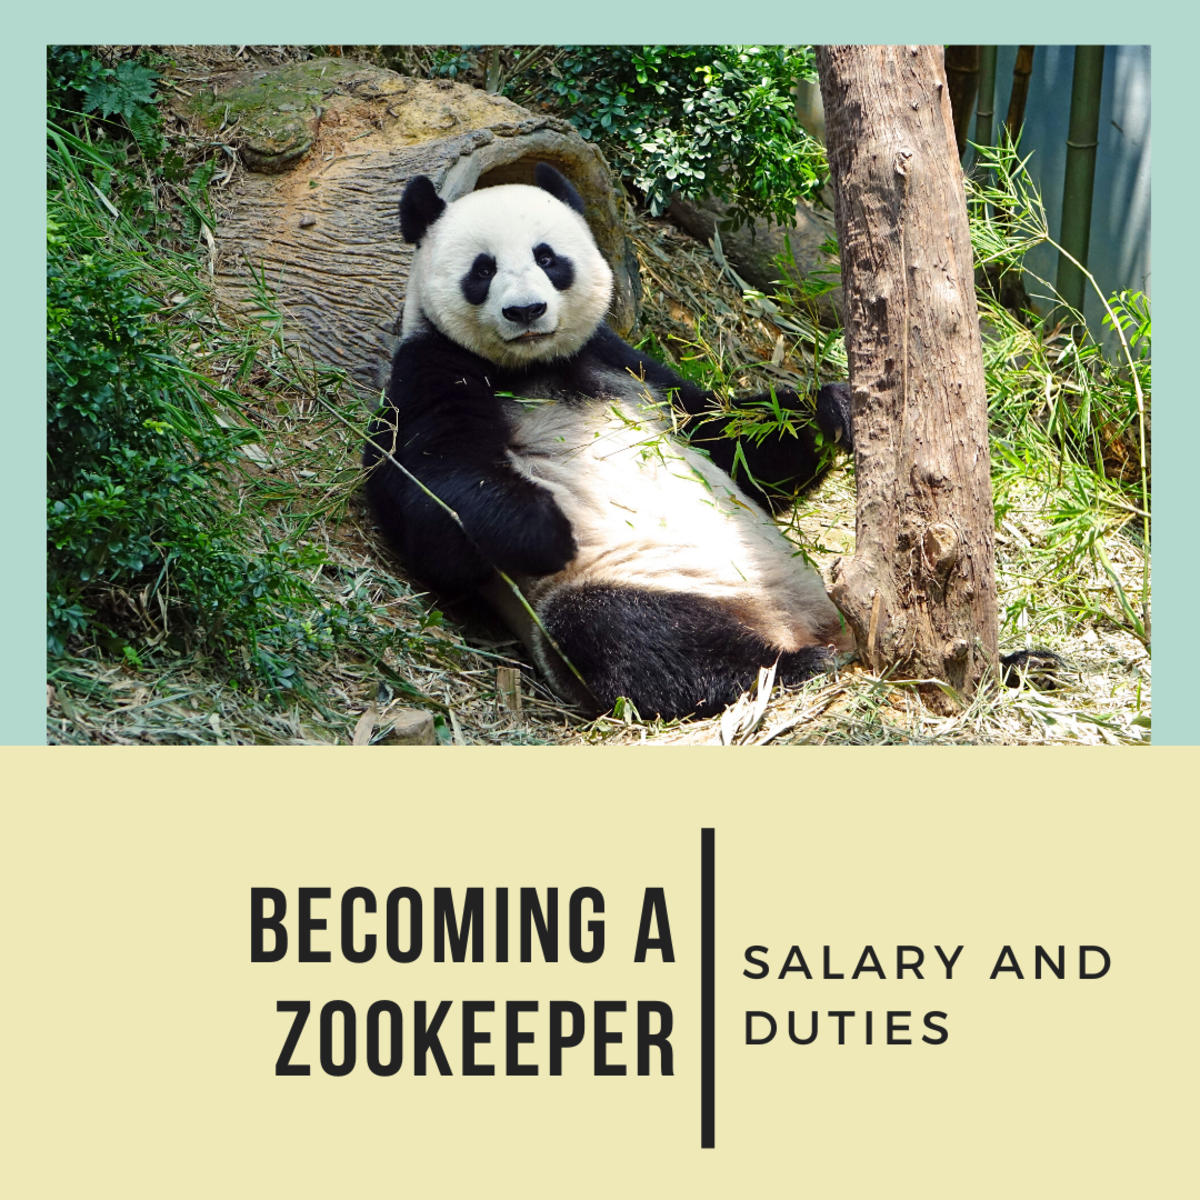 This article includes all you need to know about becoming a zookeeper!